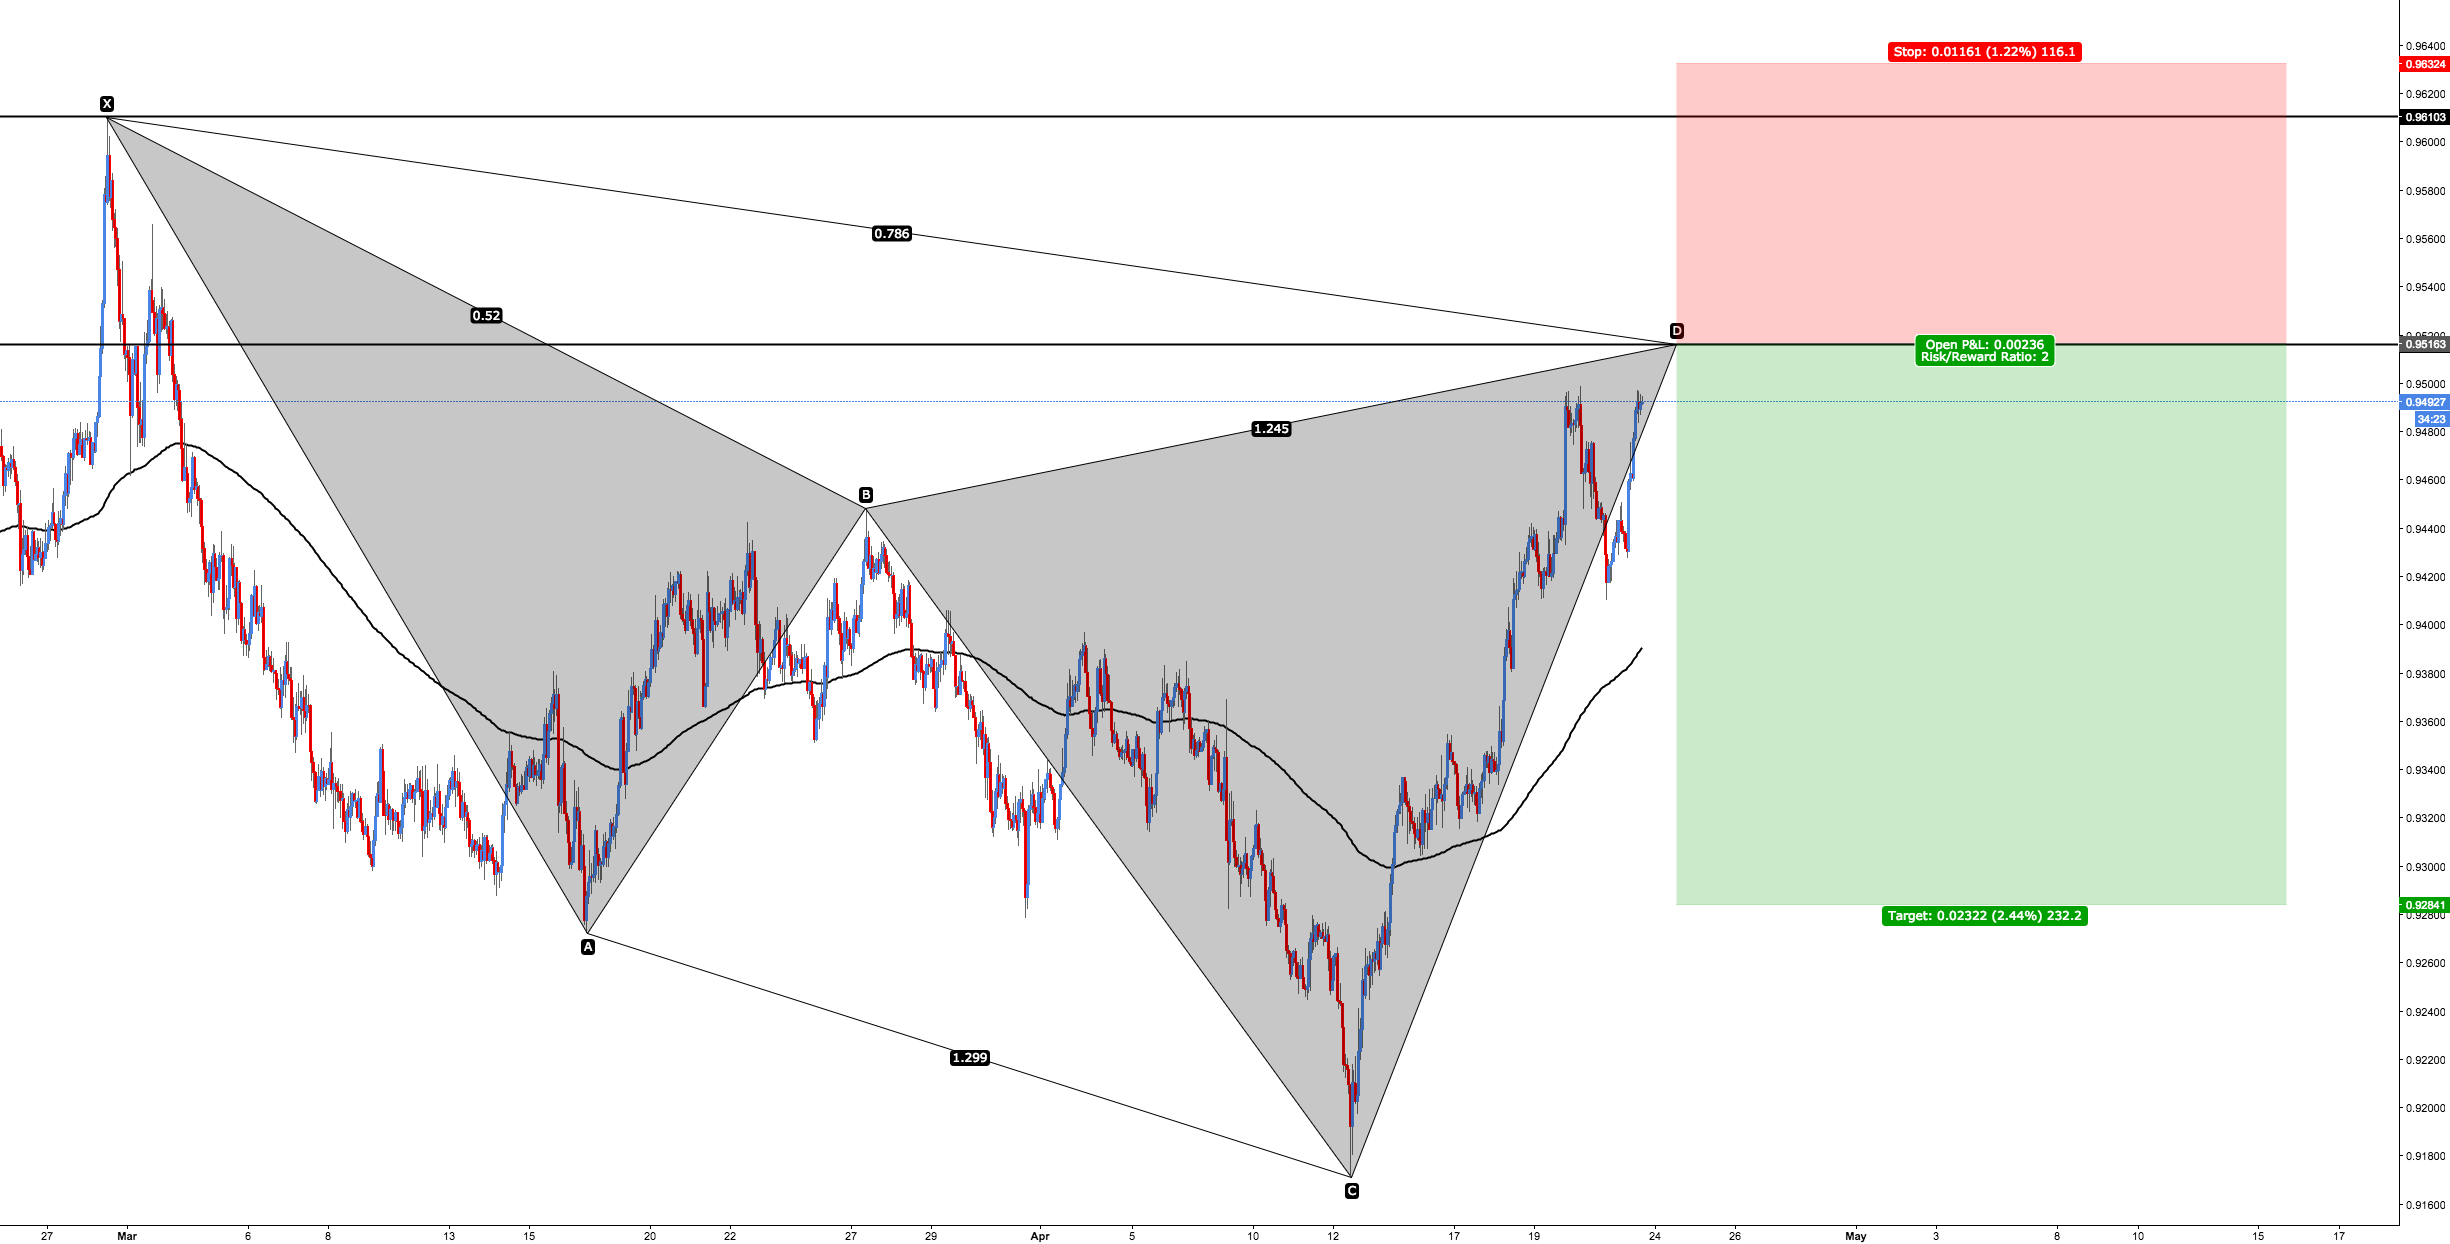 NZD/CAD - Bearish Cypher